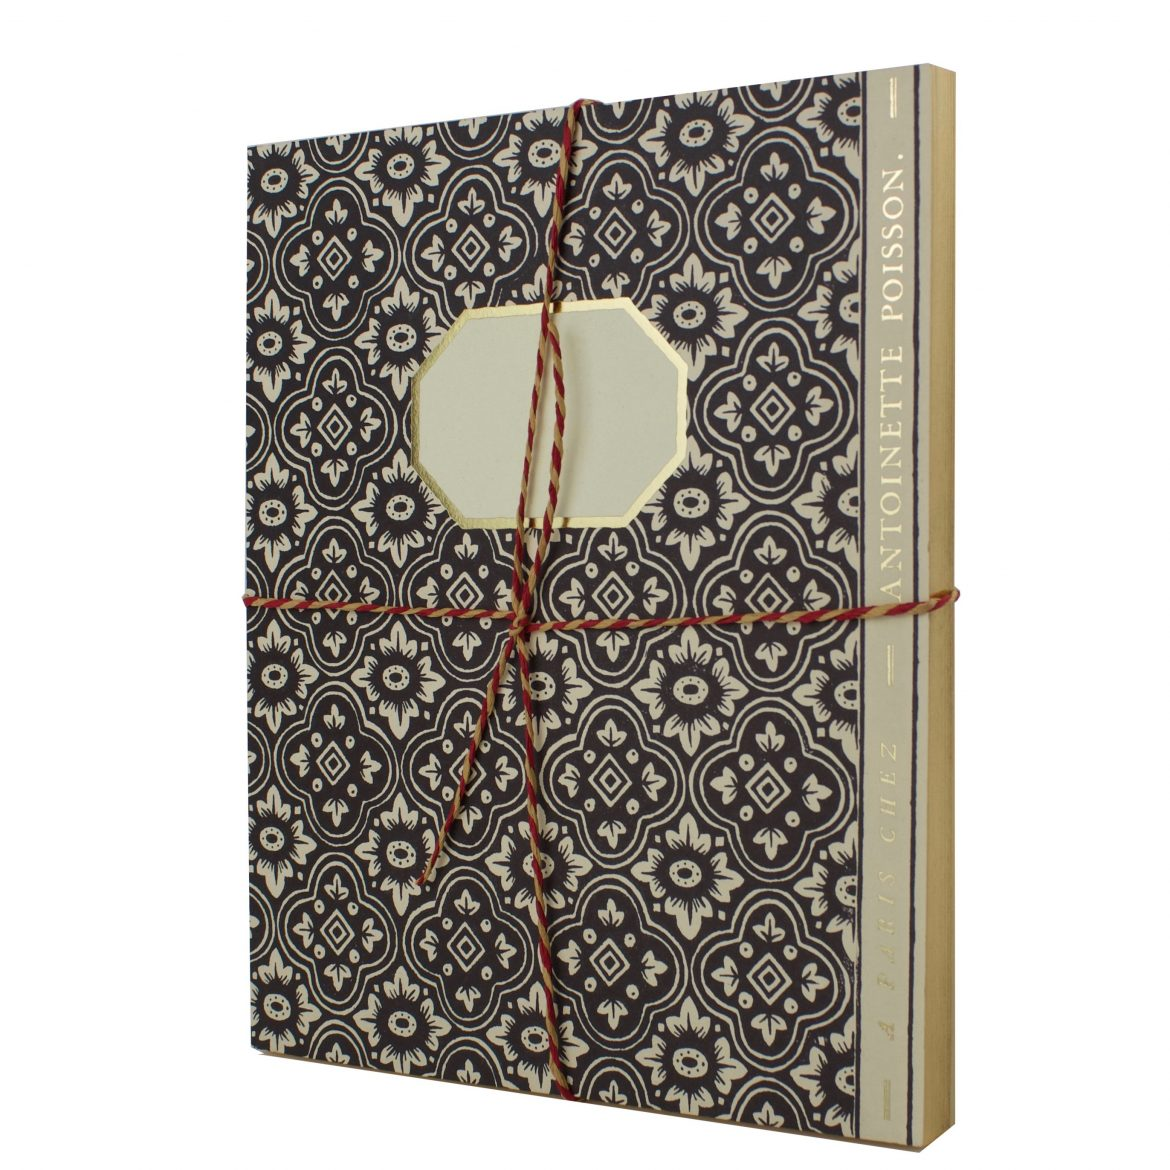 Antoinette Poisson Large Notebook Black